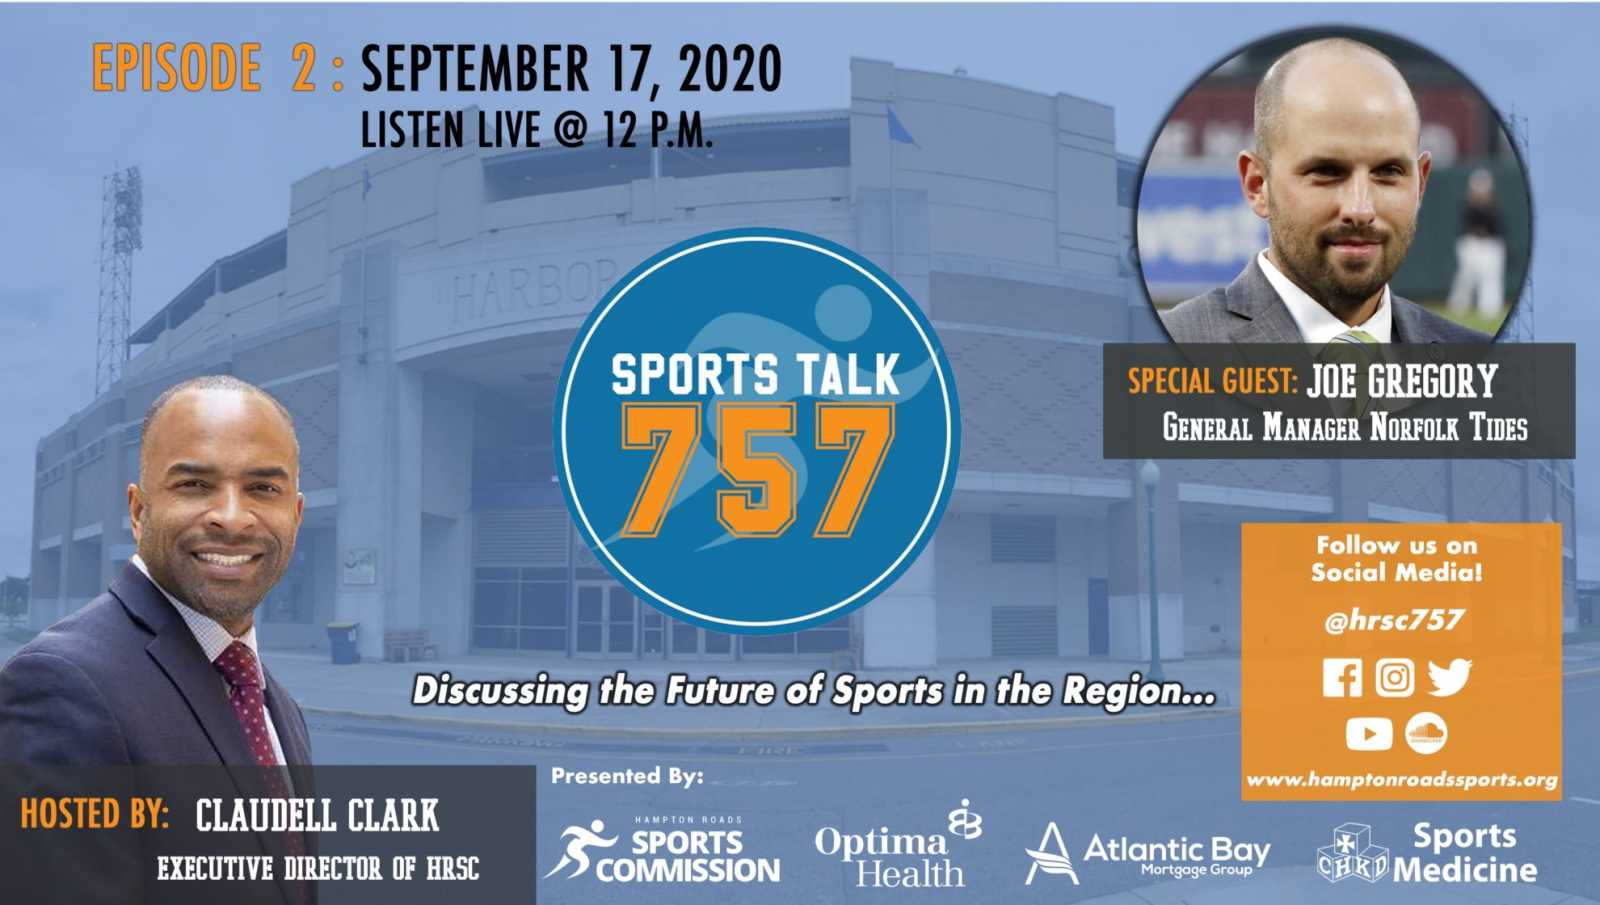 SportsTalk 757 Episode 02: September 17, 2020 featuring Joe Gregory